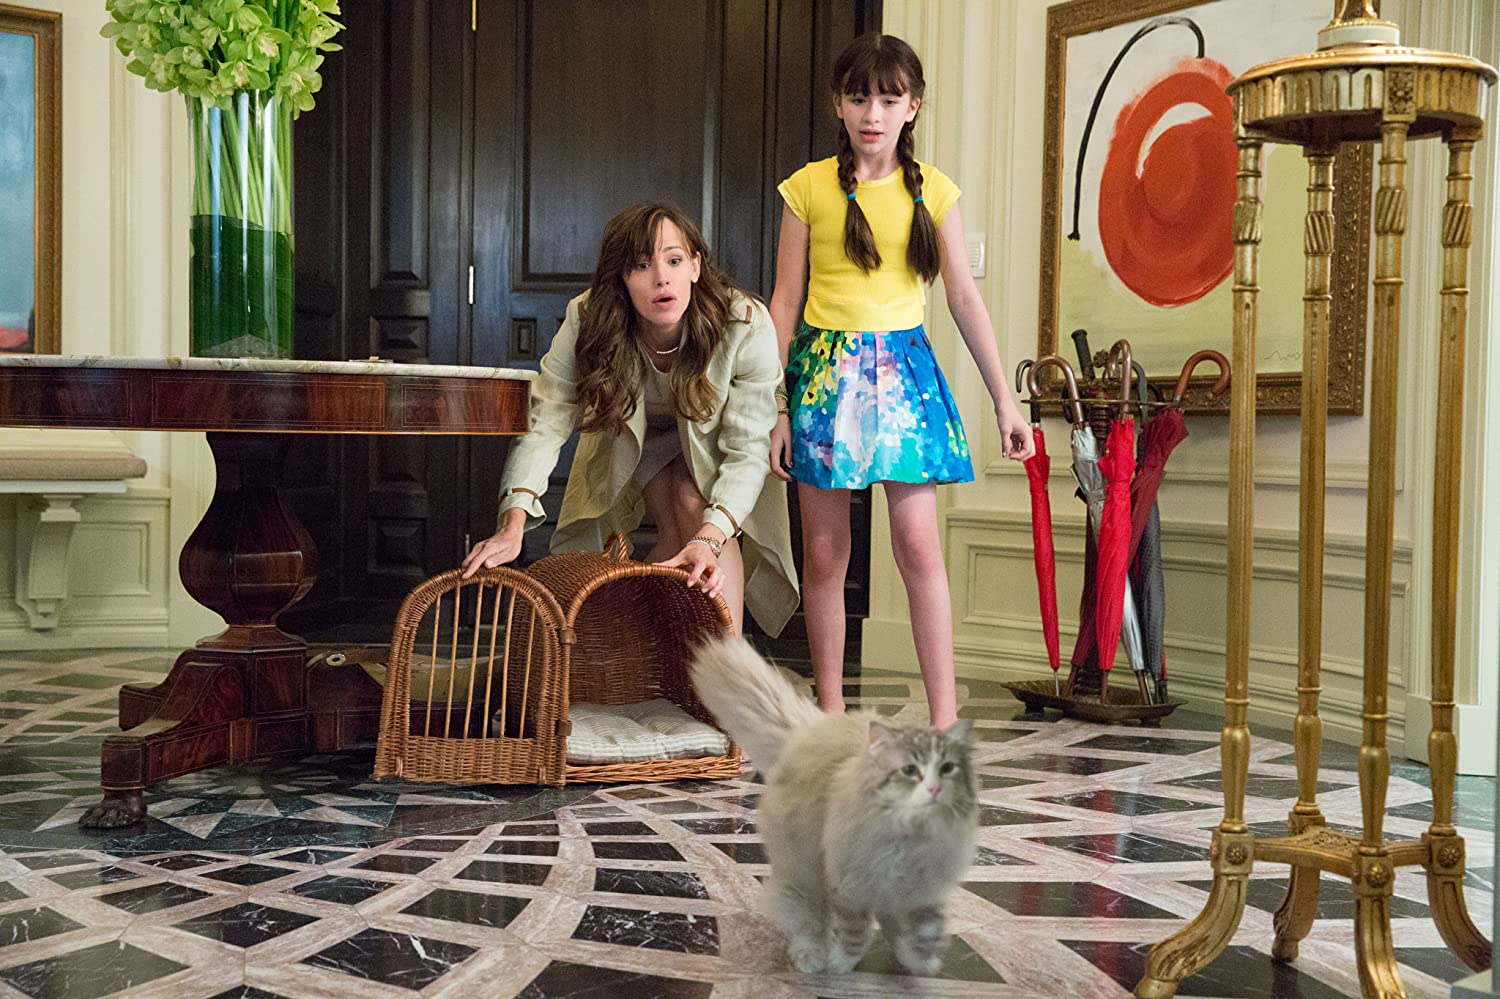 Jennifer Garner and Malina Weissman in Nine Lives (2016)